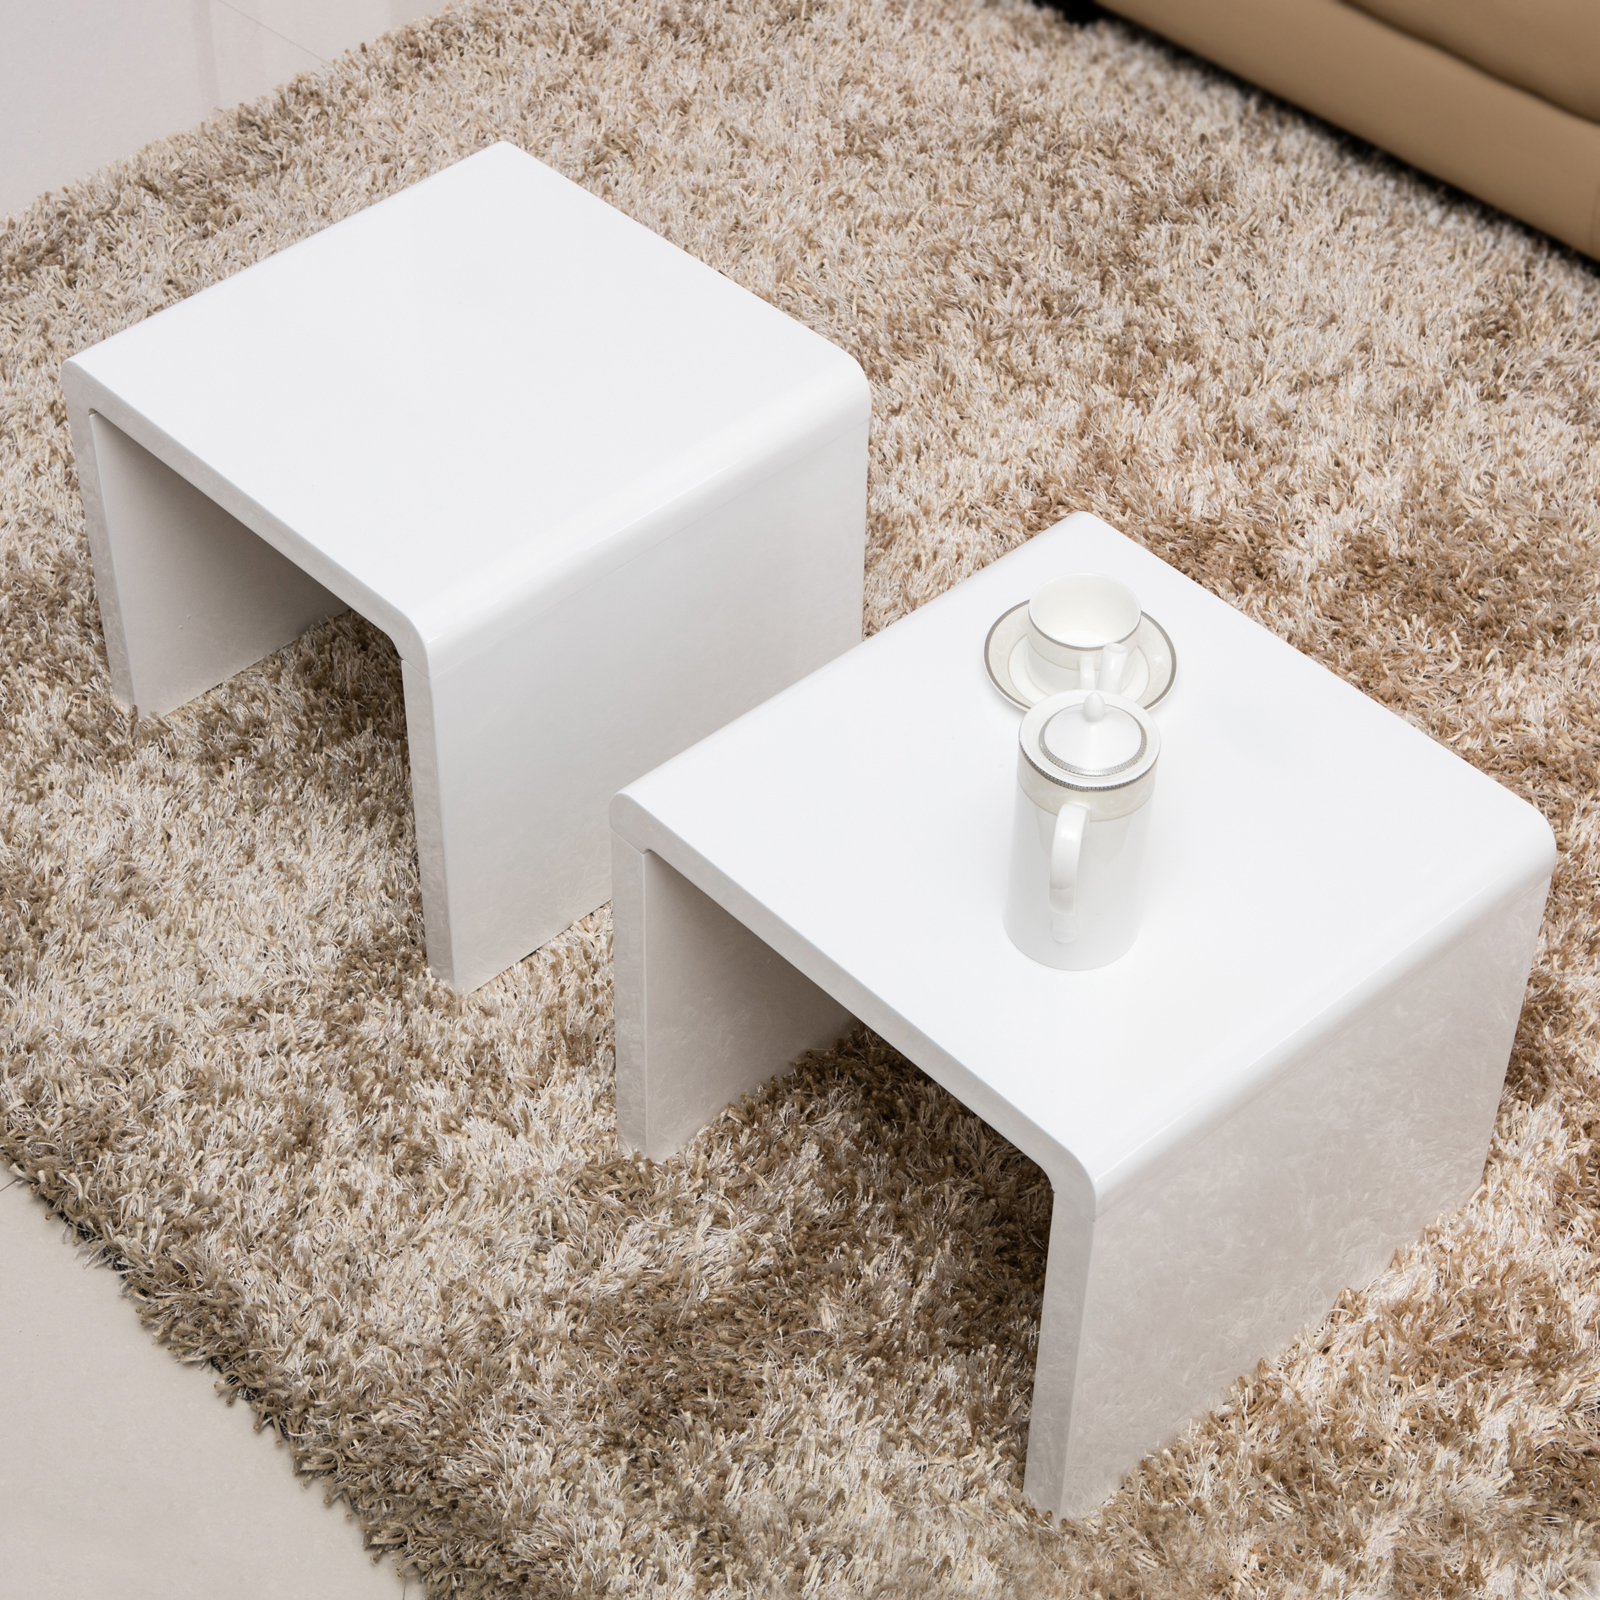 High Gloss 3 Side Nested Of Tables White Set Coffee Table: High Gloss White Coffee Table Side/End Table Set Of 2